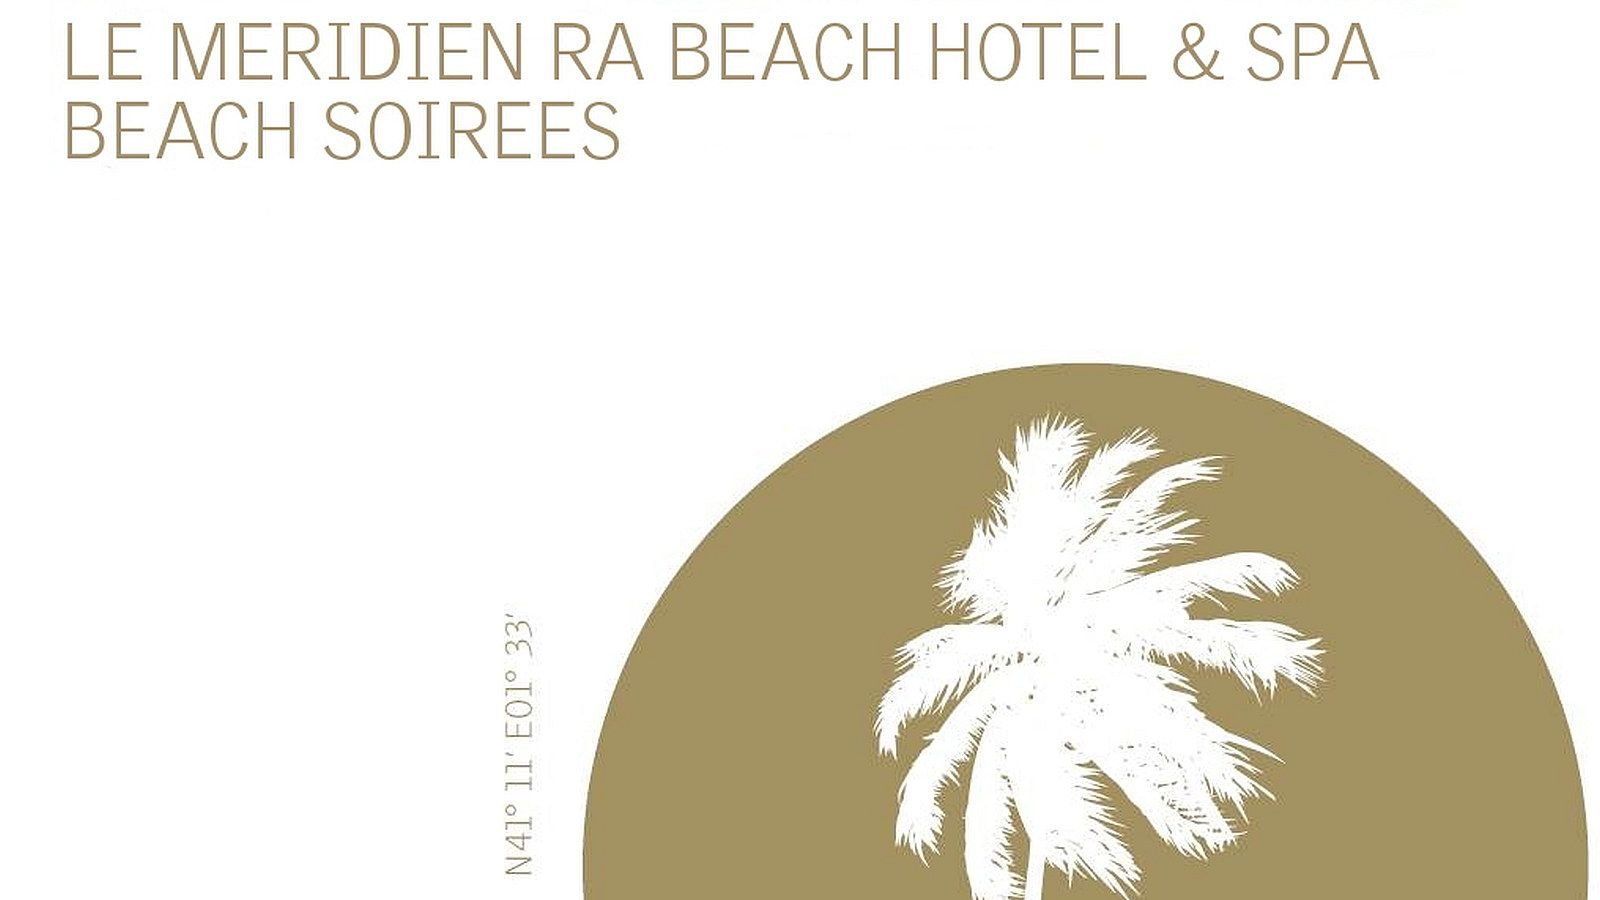 Enjoy Le Méridien Ra Hotels Beach Soirees - Dinner, Drinks and live musiv by the beach in Barcelona.